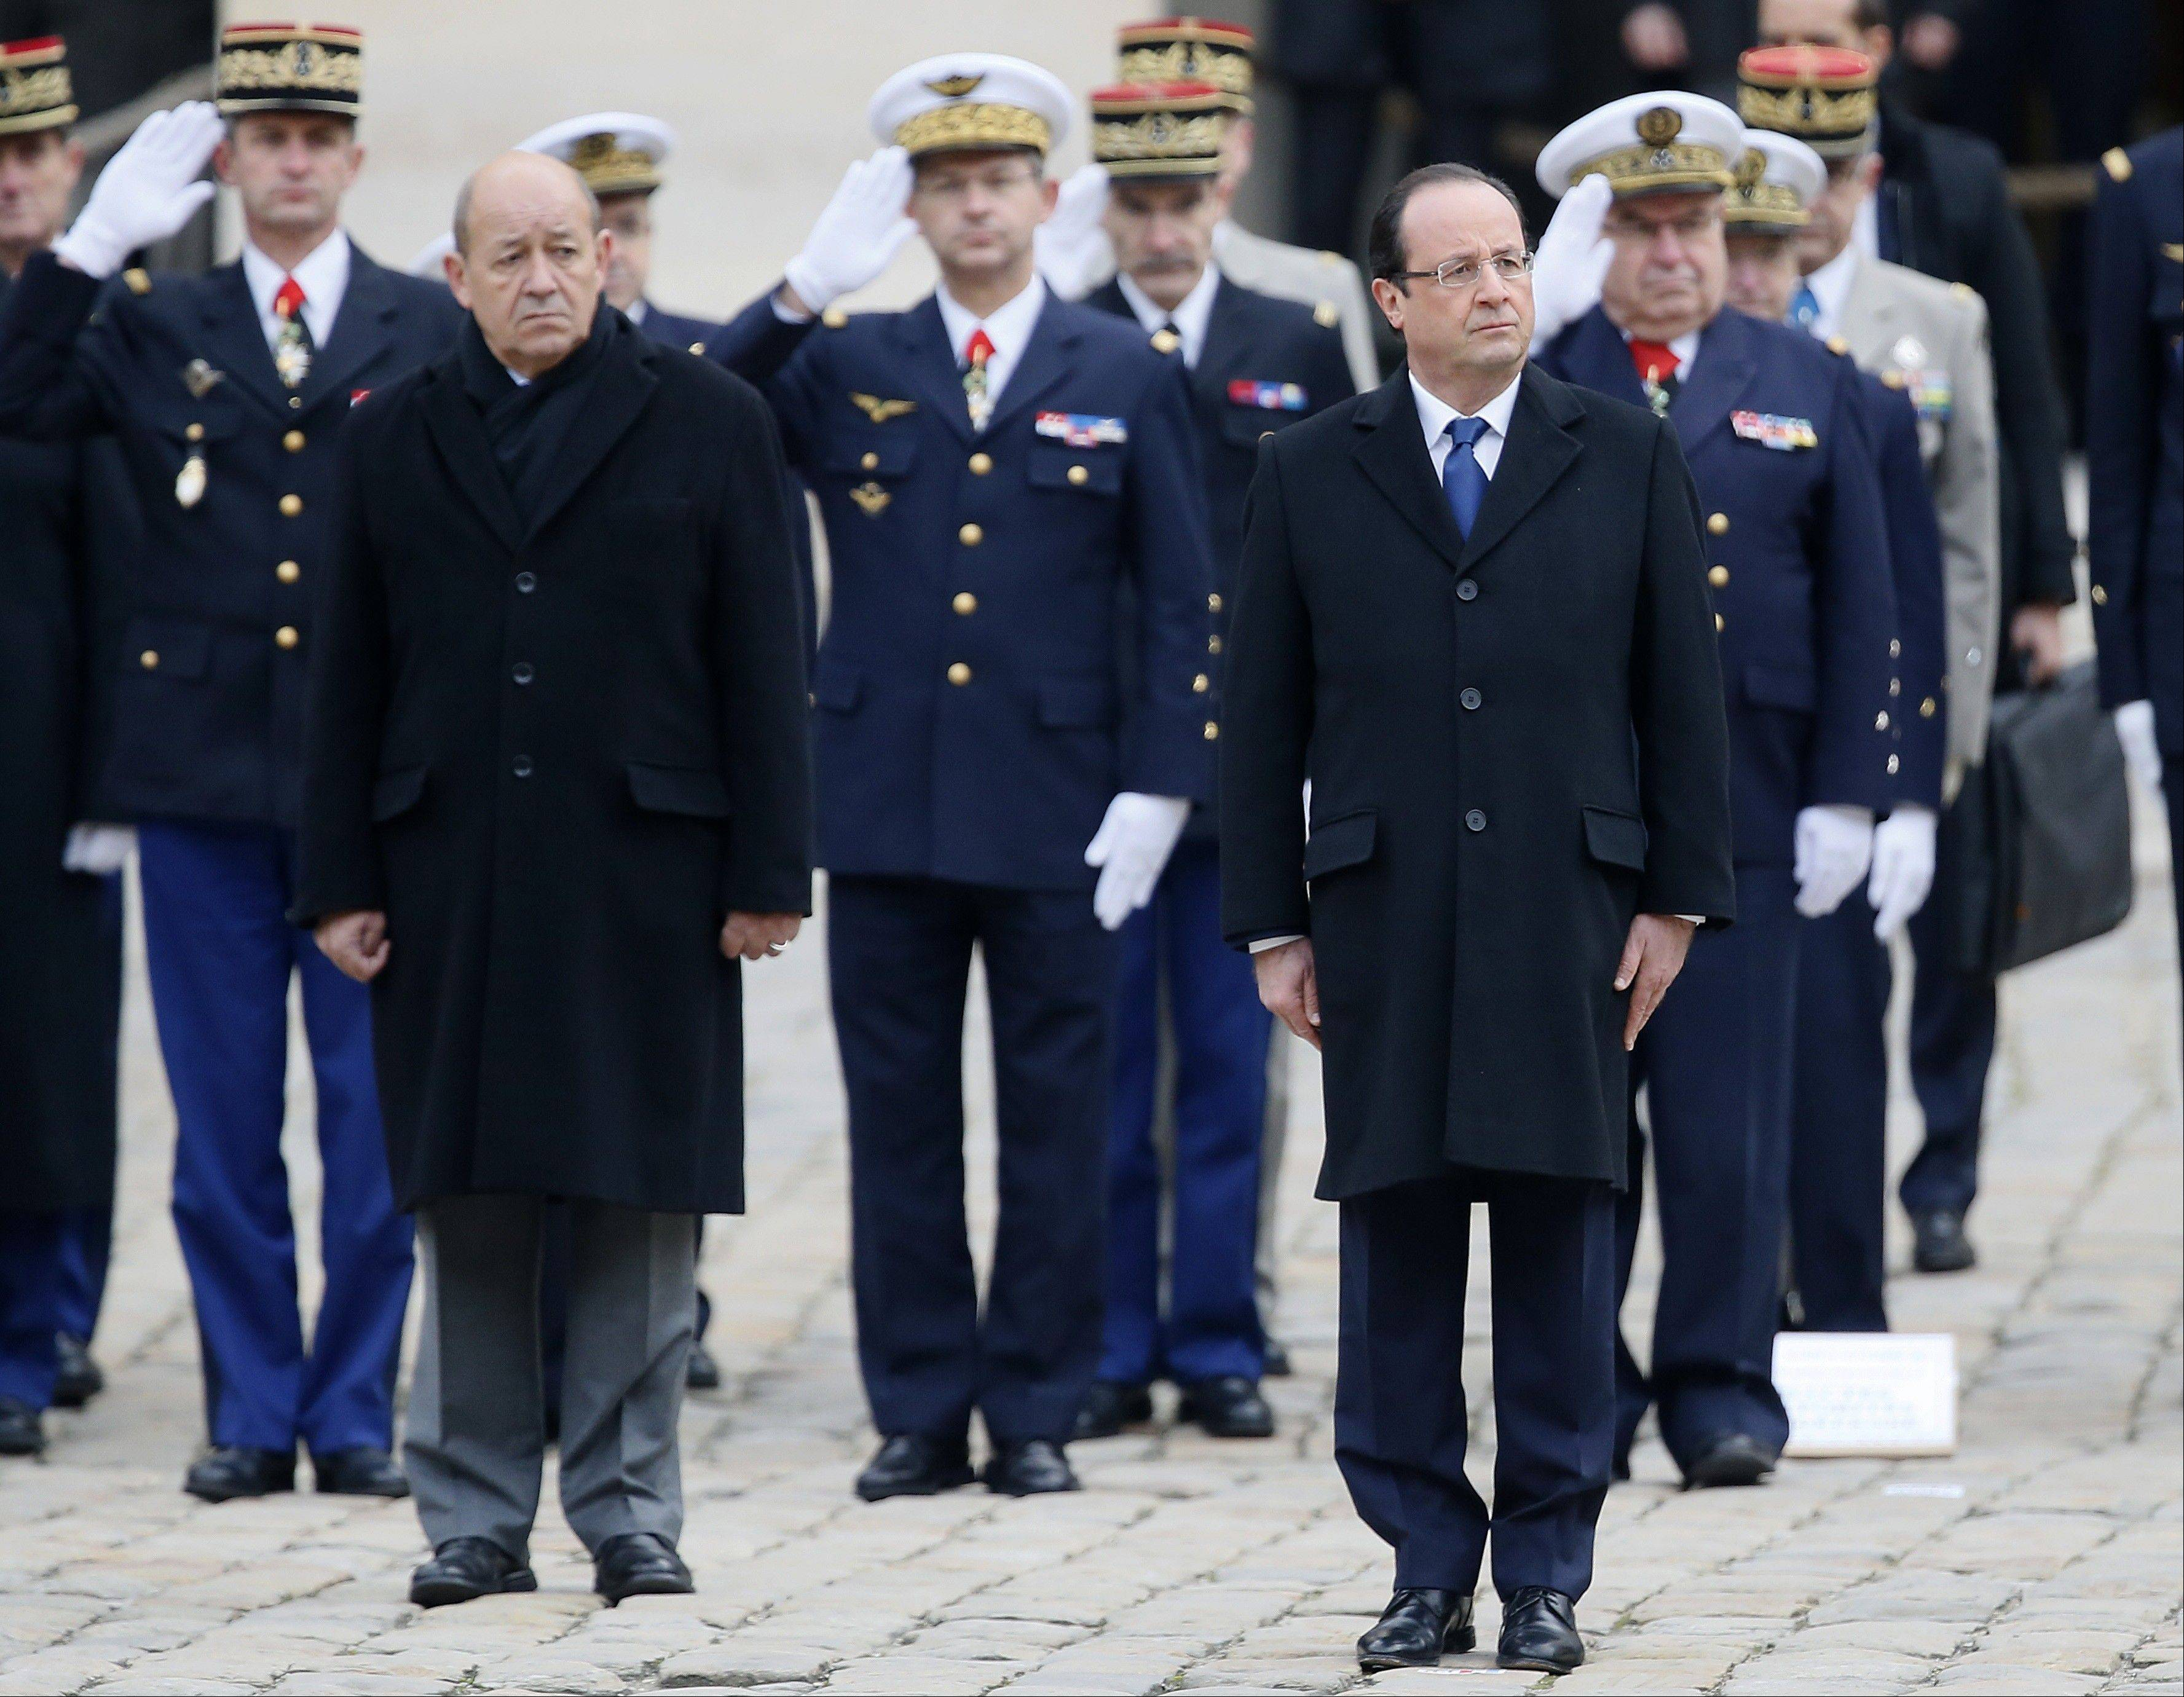 French President Francois Hollande, right, and Defense Minister Jean-Yves Le Drian reviews the troops during a military ceremony, Tuesday, Nov. 26, 2013, at the Invalides in Paris. France will send 1,000 troops to Central African Republic under an expected U.N.-backed mission to keep growing chaos at bay.